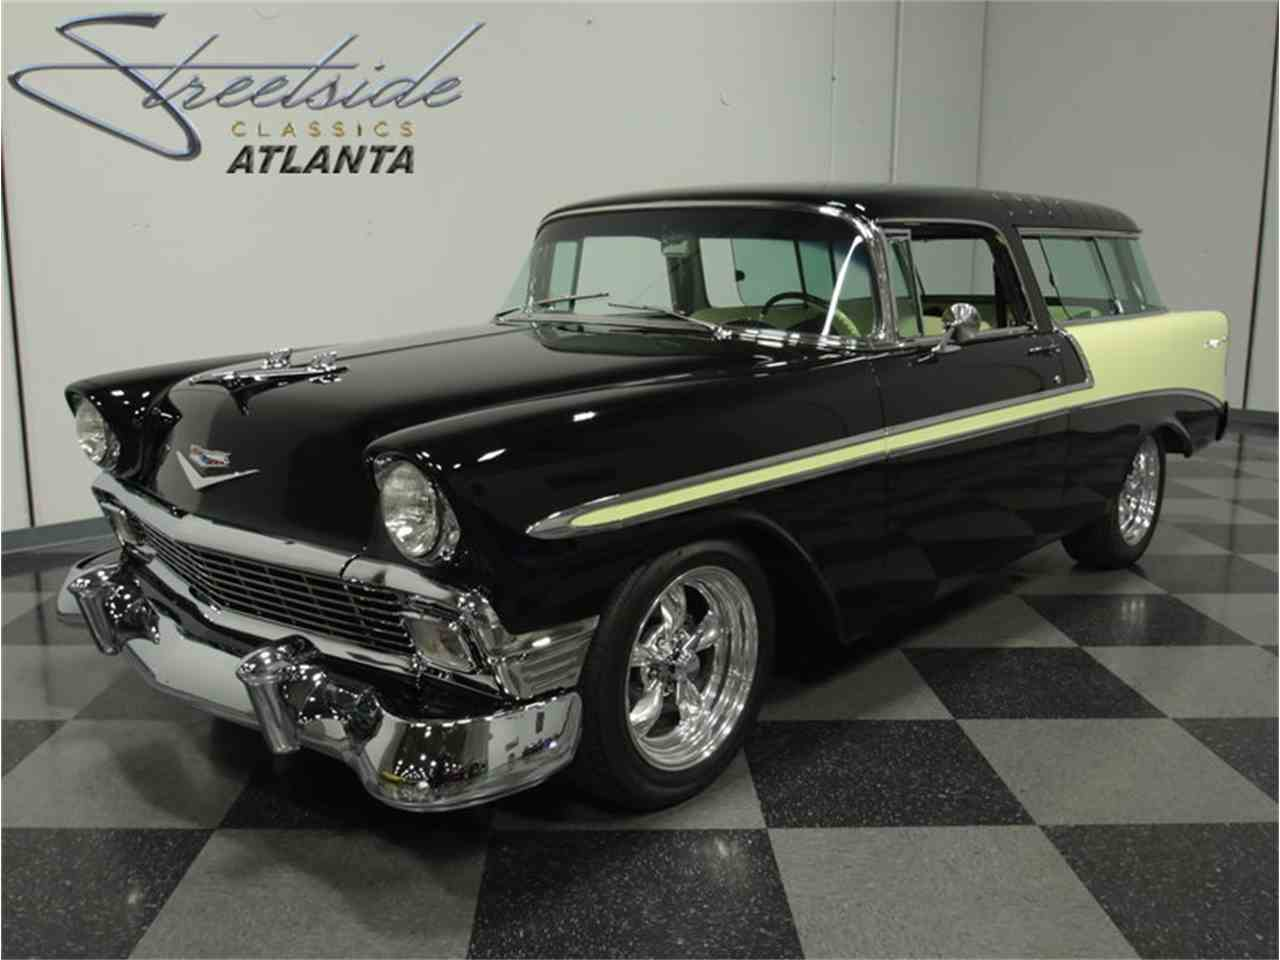 All Chevy 1956 chevy nomad for sale : 1956 Chevrolet Nomad for Sale | ClassicCars.com | CC-780462